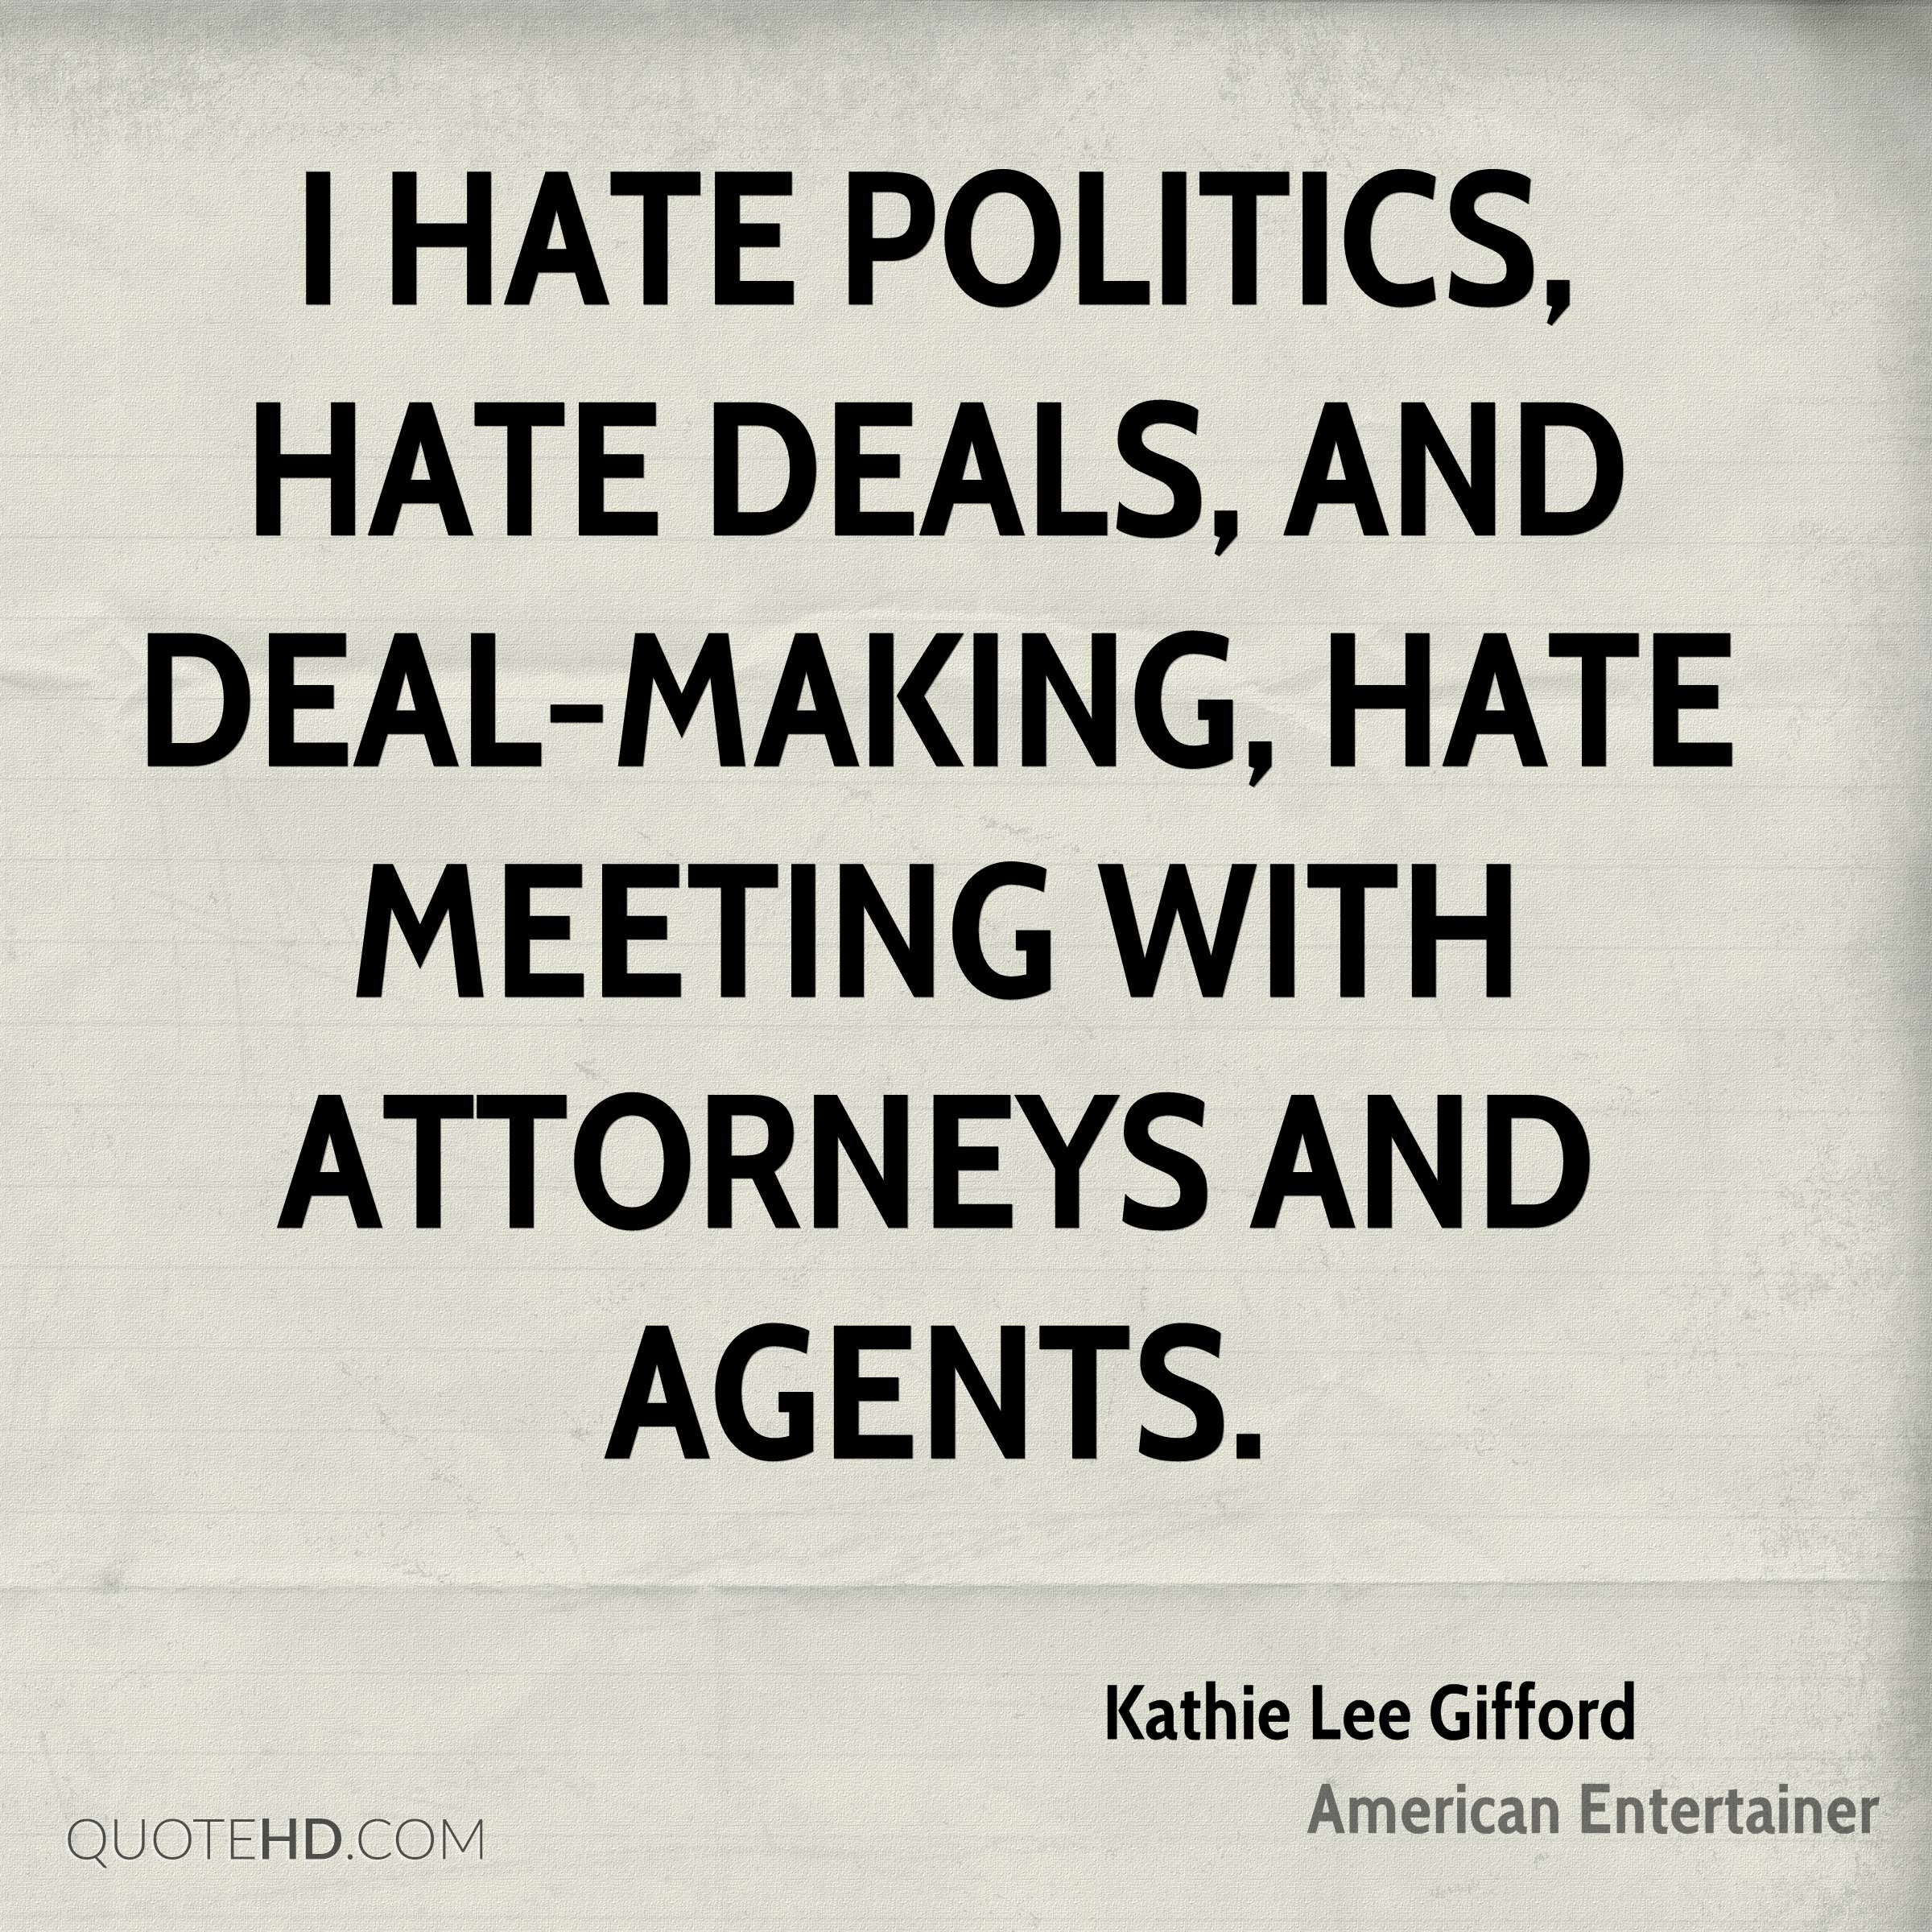 I hate politics, hate deals, and deal-making, hate meeting with attorneys and agents.